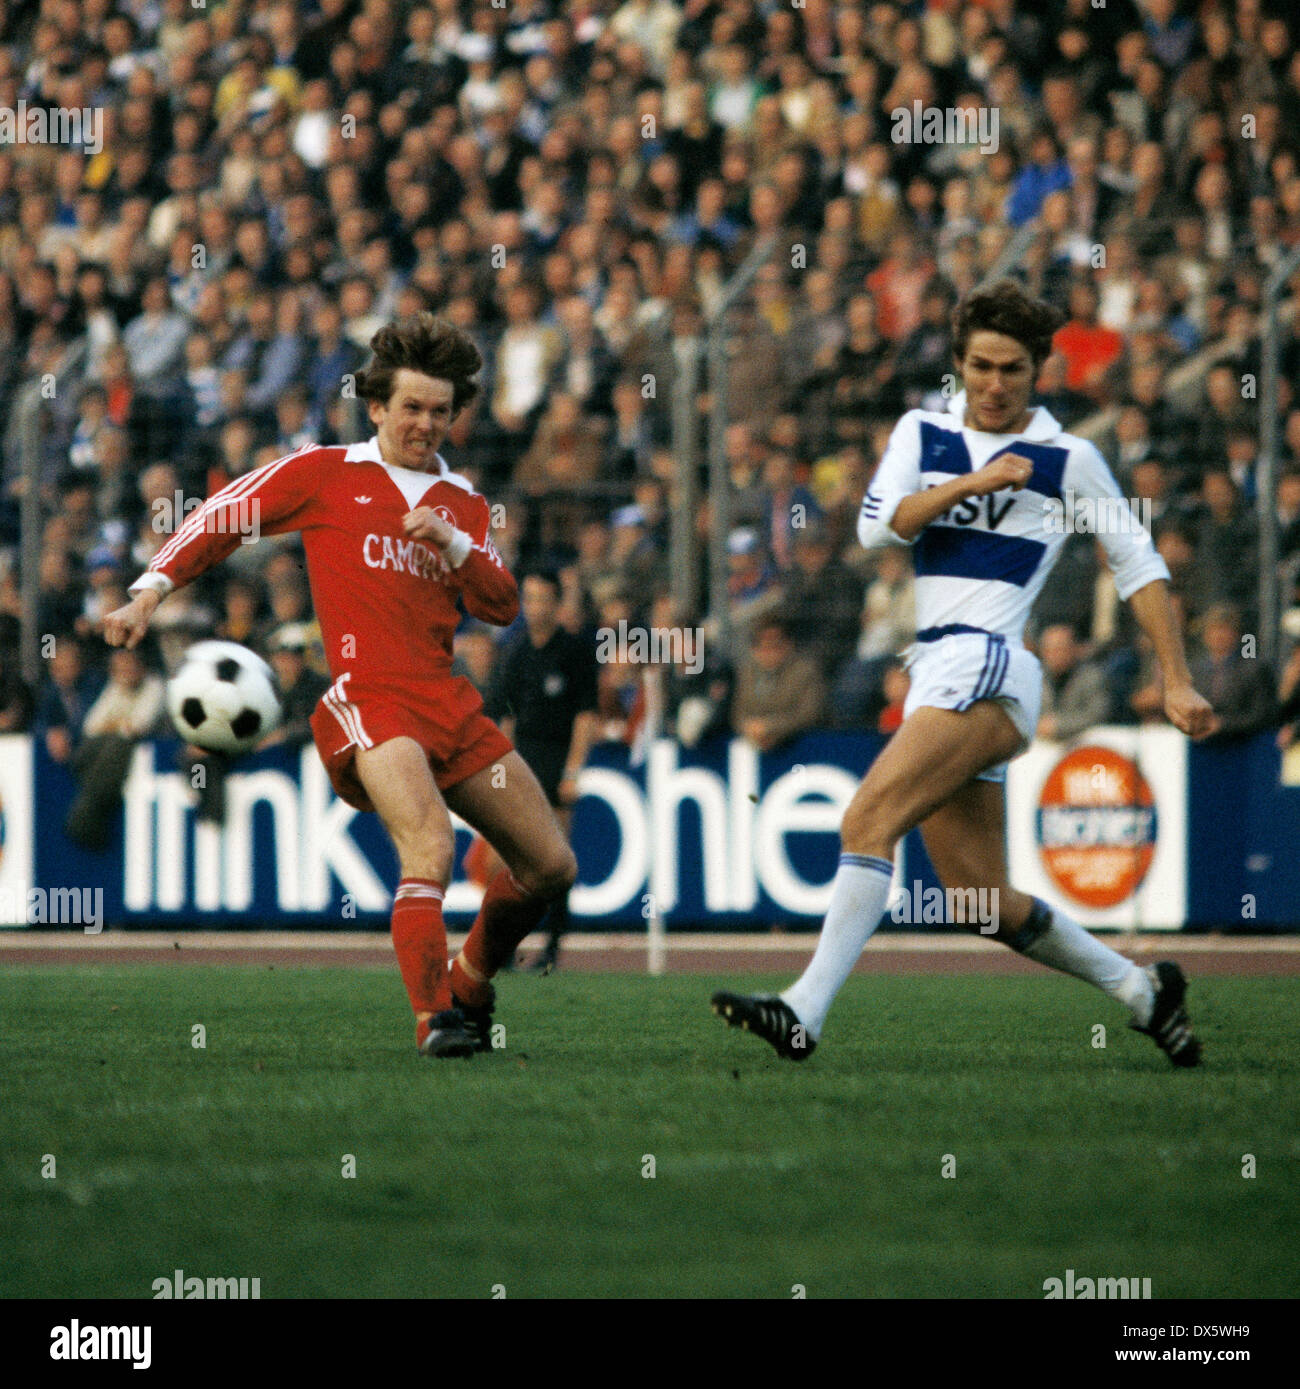 football, DFB Cup, 1977/1978, Third Round, Wedau Stadium, MSV Duisburg versus 1. FC Kaiserslautern 2:1, scene of the match, shot on goal by Kurt Jara (MSV), left Werner Melzer (FCK) - Stock Image